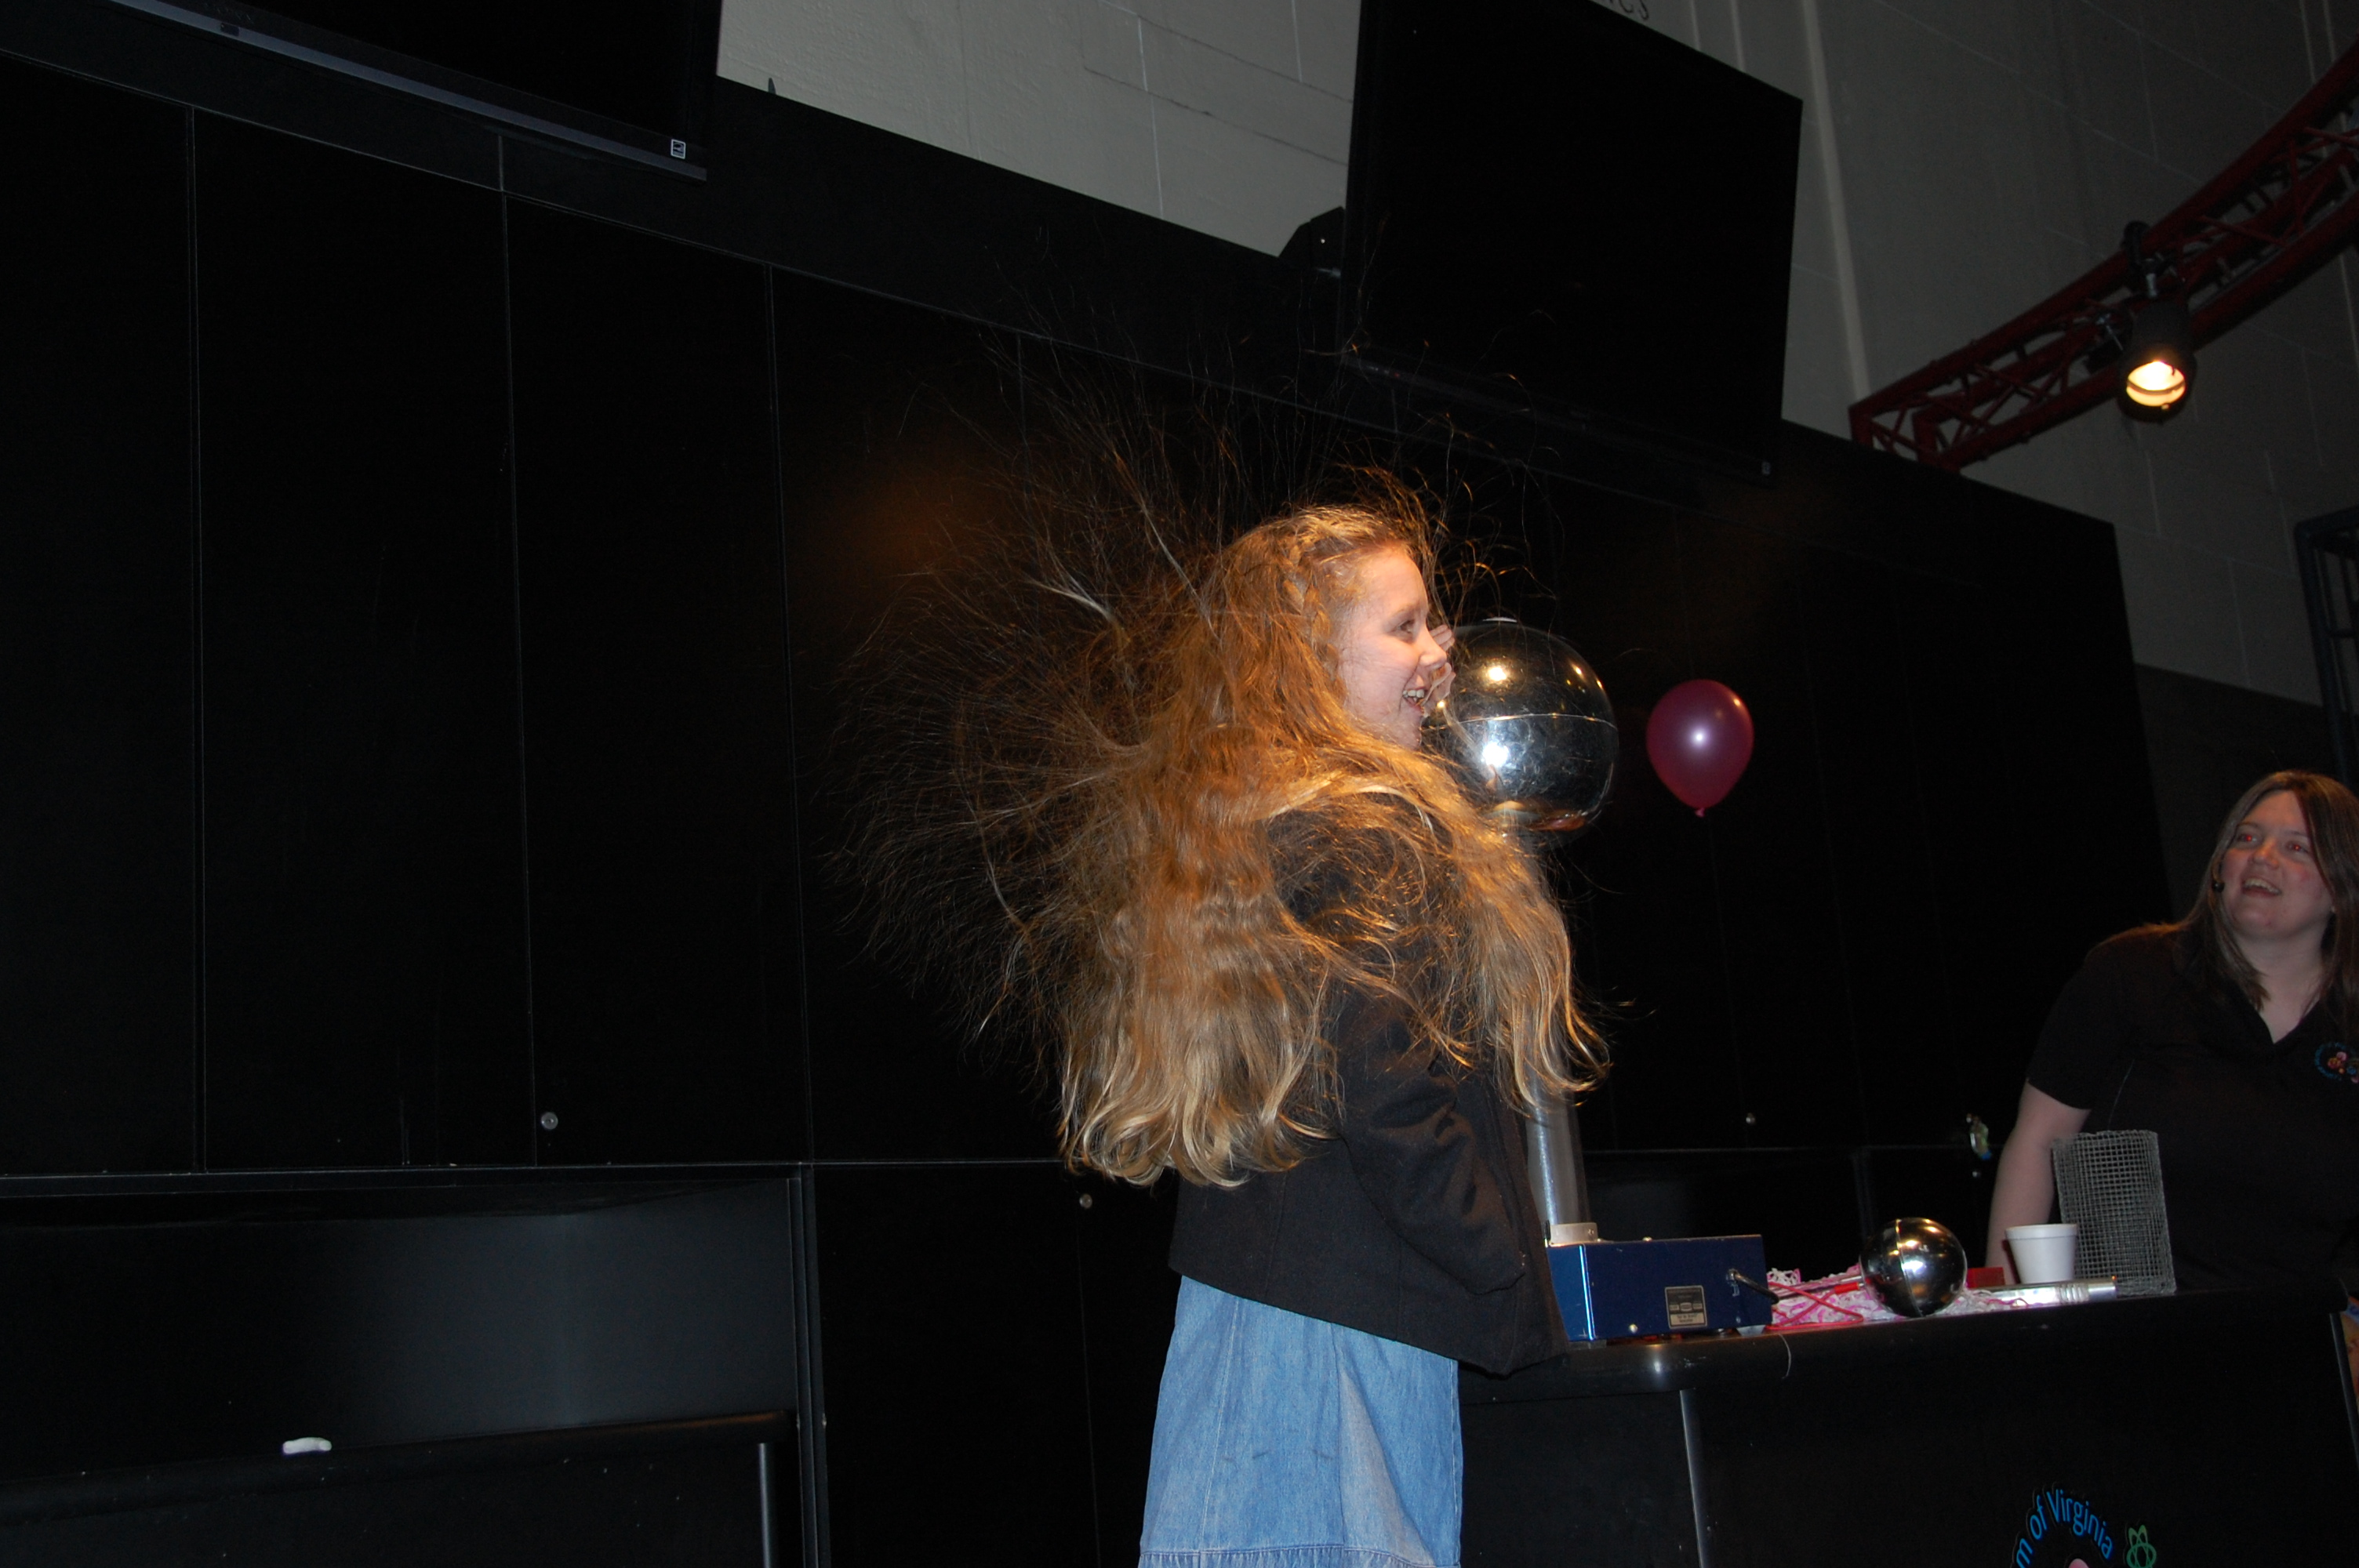 Gracie learning about static electricity.